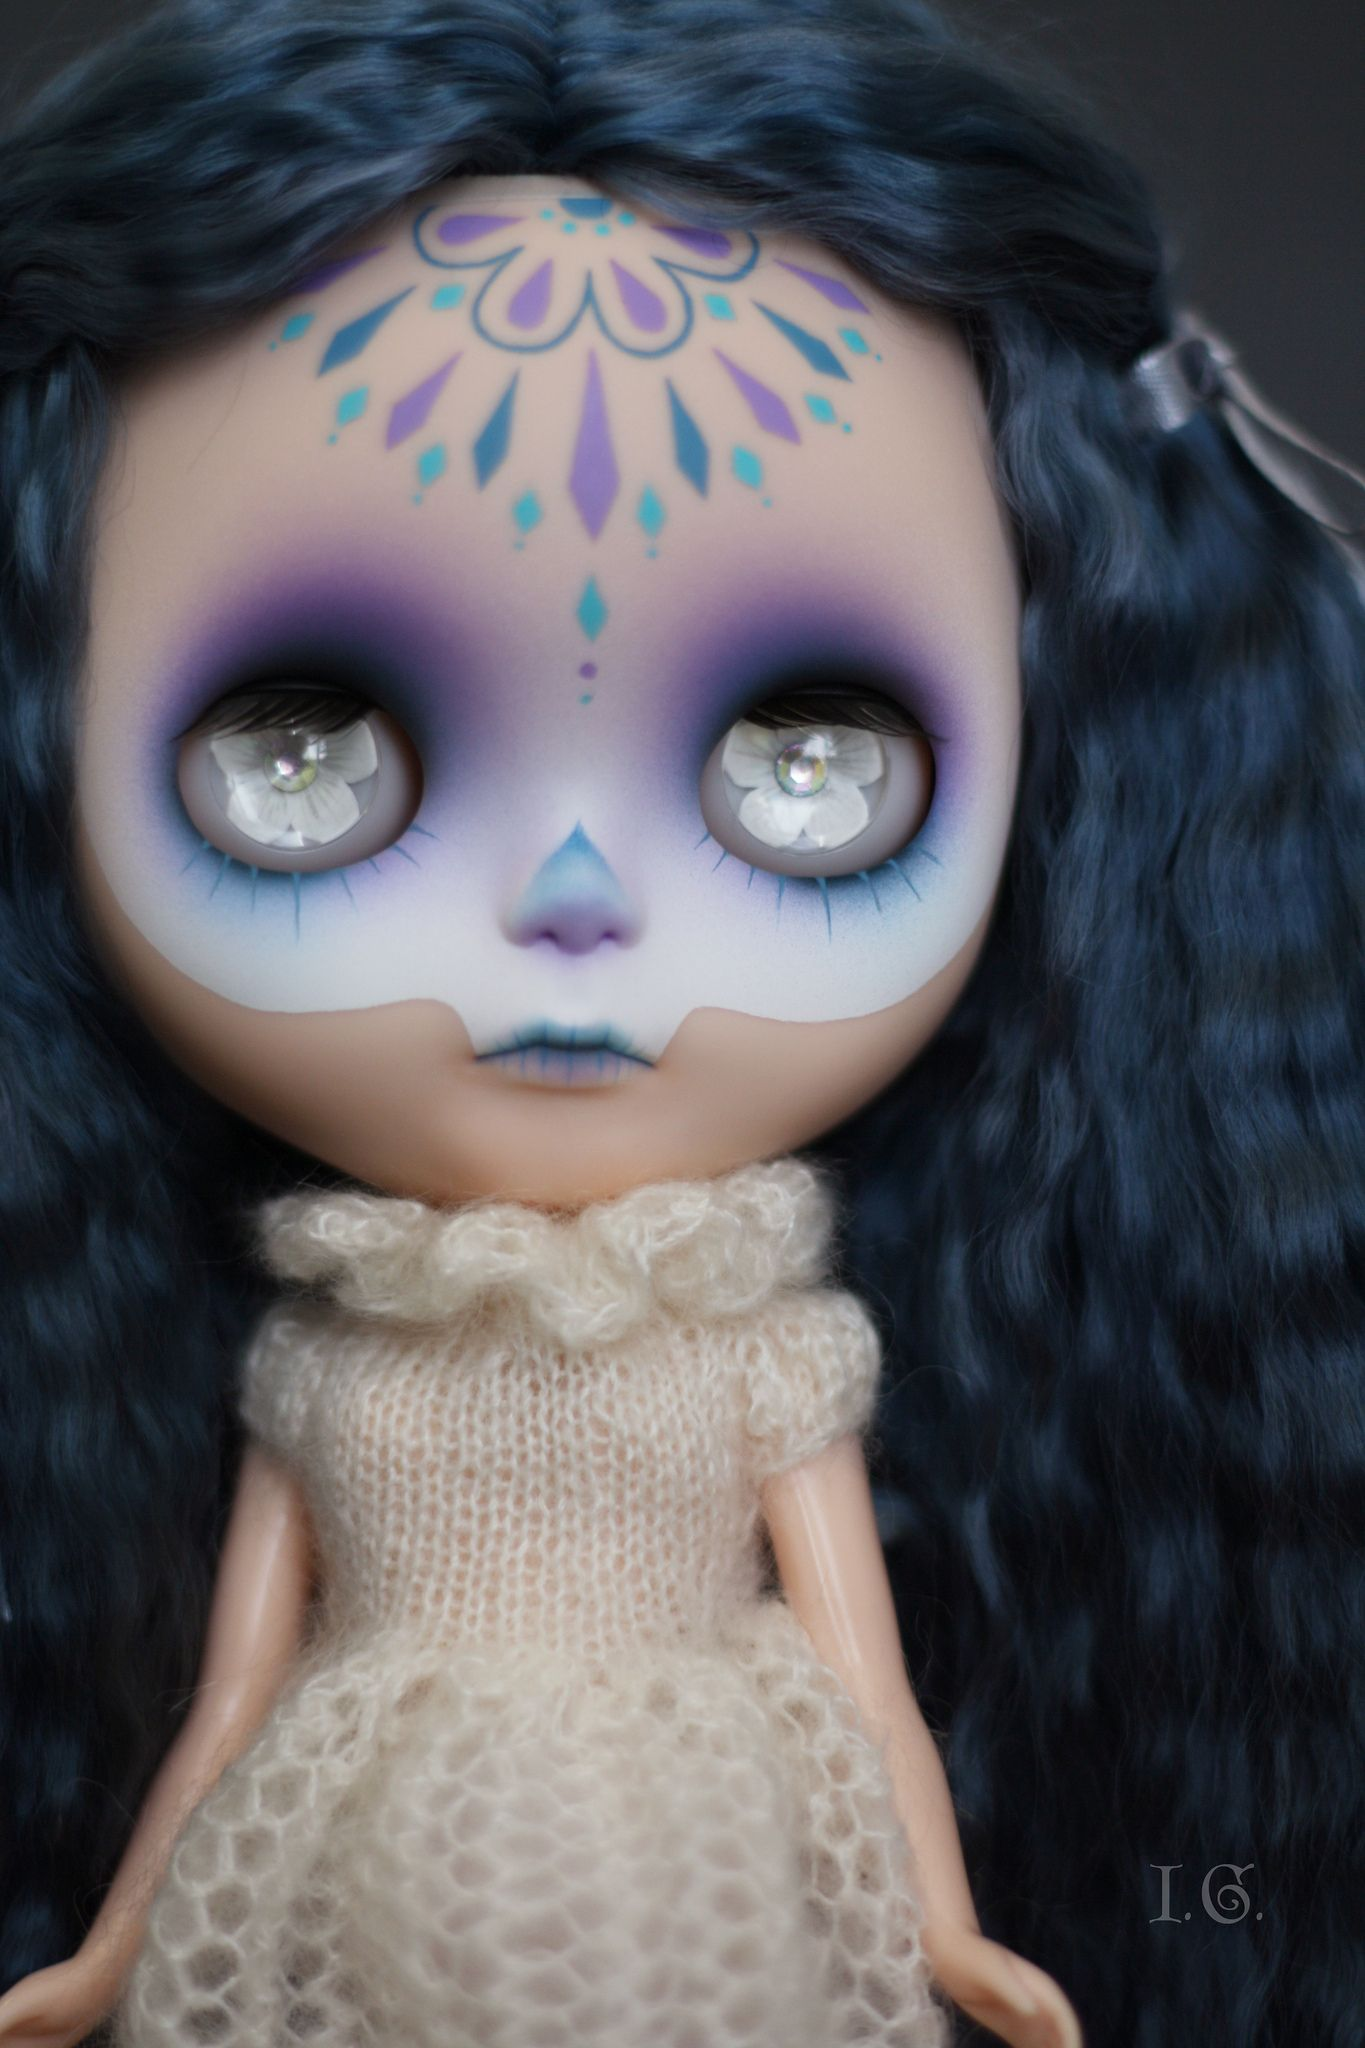 https://flic.kr/p/egUiQS | Little Dead Thing #24 | For Diem :)  wearing a dress by shershe hair by Blythe Laboratory